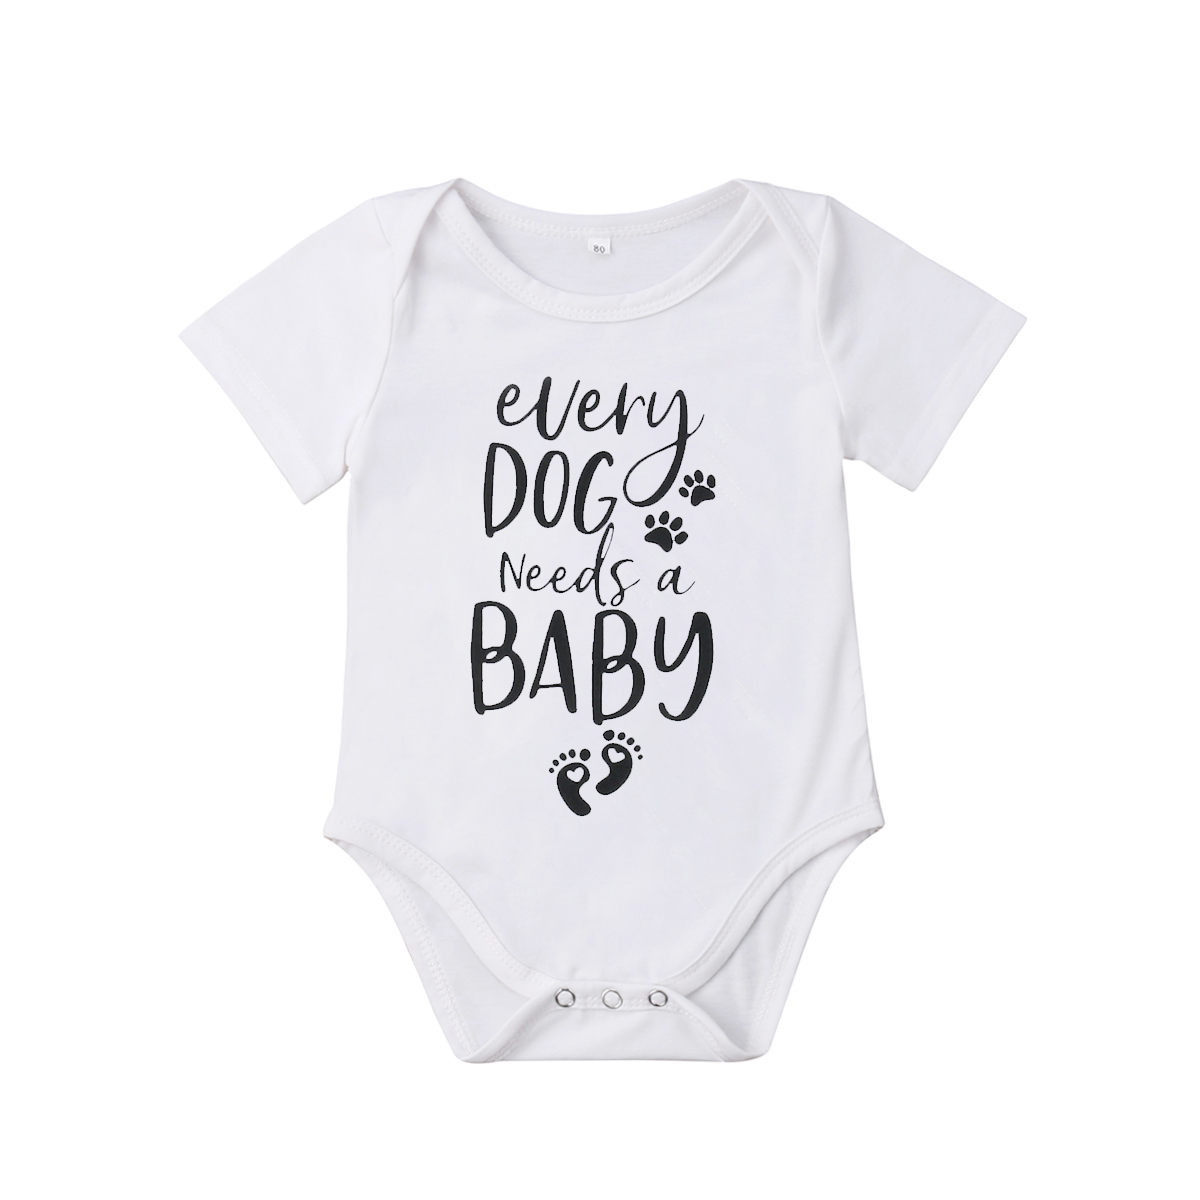 2019 Brand New 0-18M Summer Causal Toddler Baby Girl Boy Short Sleeve Letter Puppy Footprints White Romper Jumpsuits Clothes